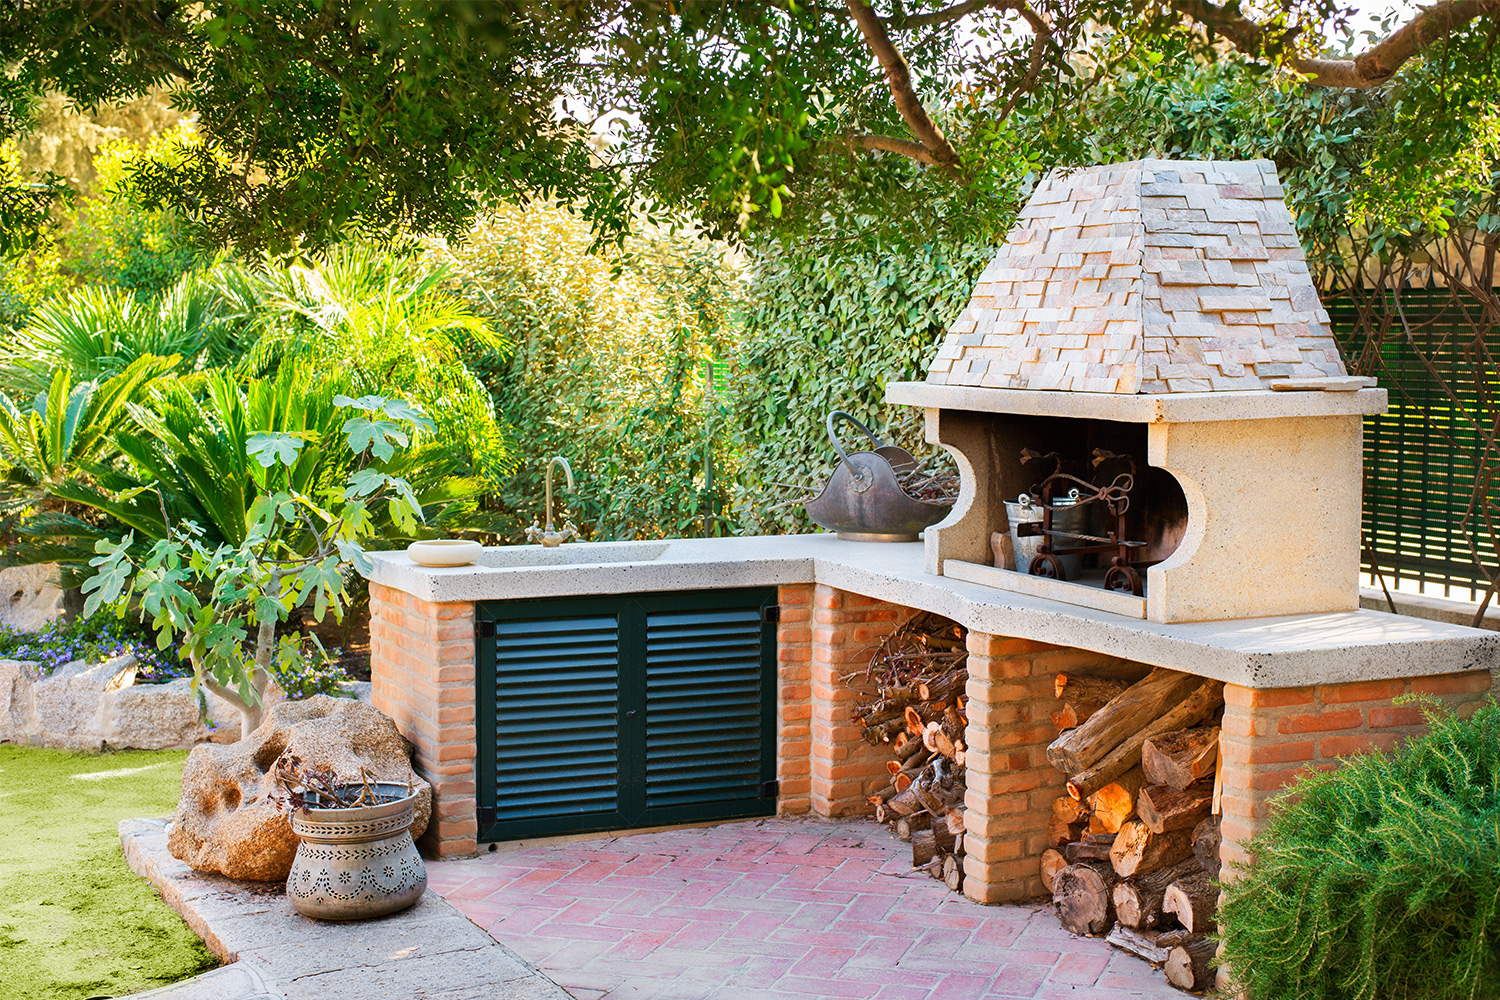 outdoor kitchen oven small remodel cost ideas midwest home with and sink